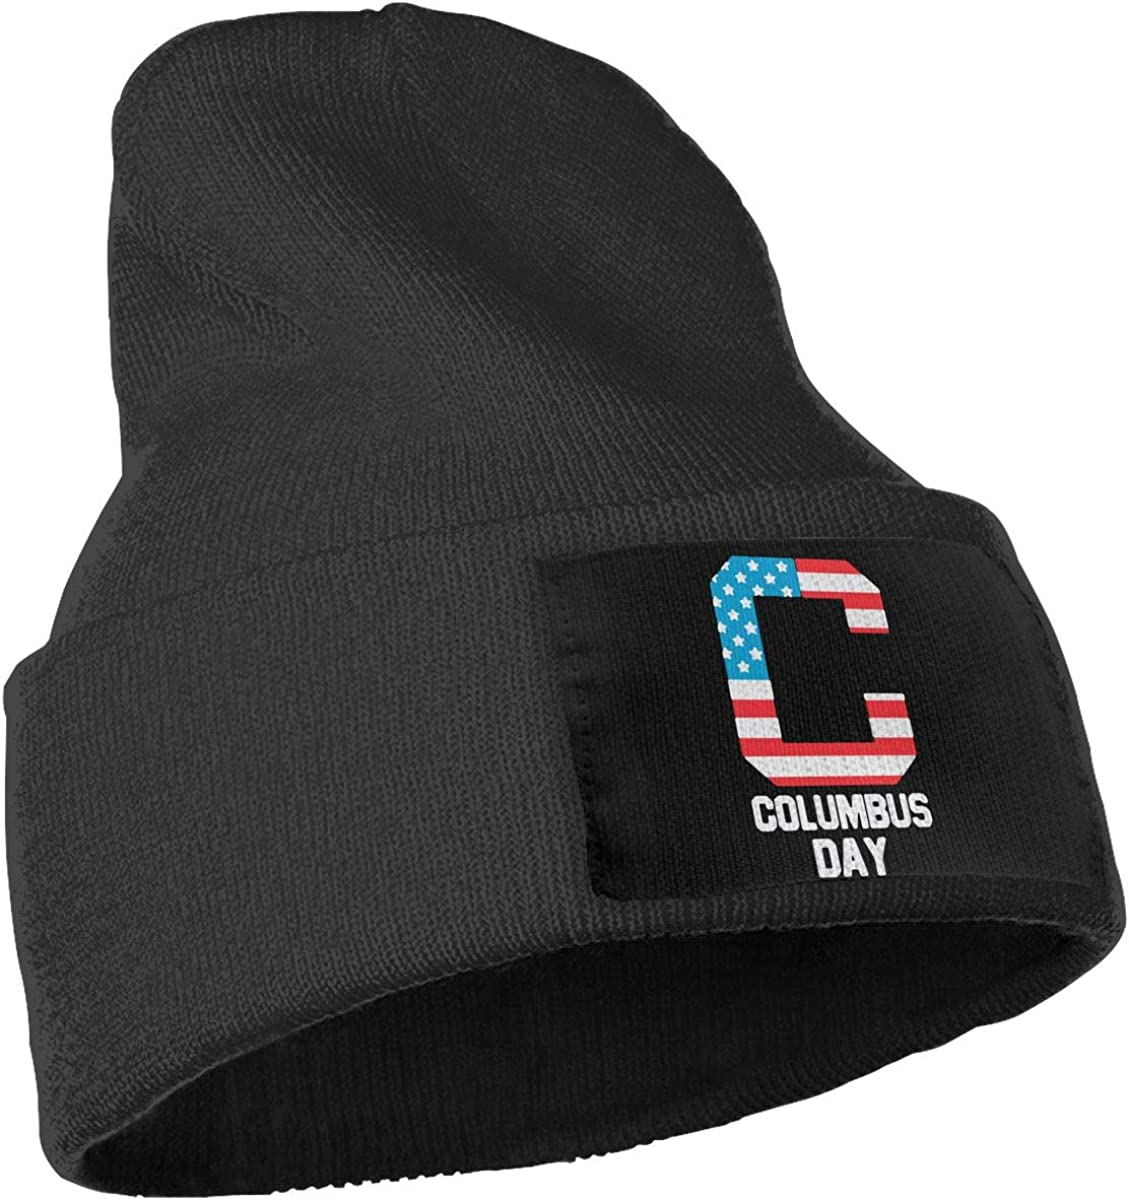 COLLJL-8 Men /& Women Columbus Day 1942 Outdoor Fashion Knit Beanies Hat Soft Winter Knit Caps